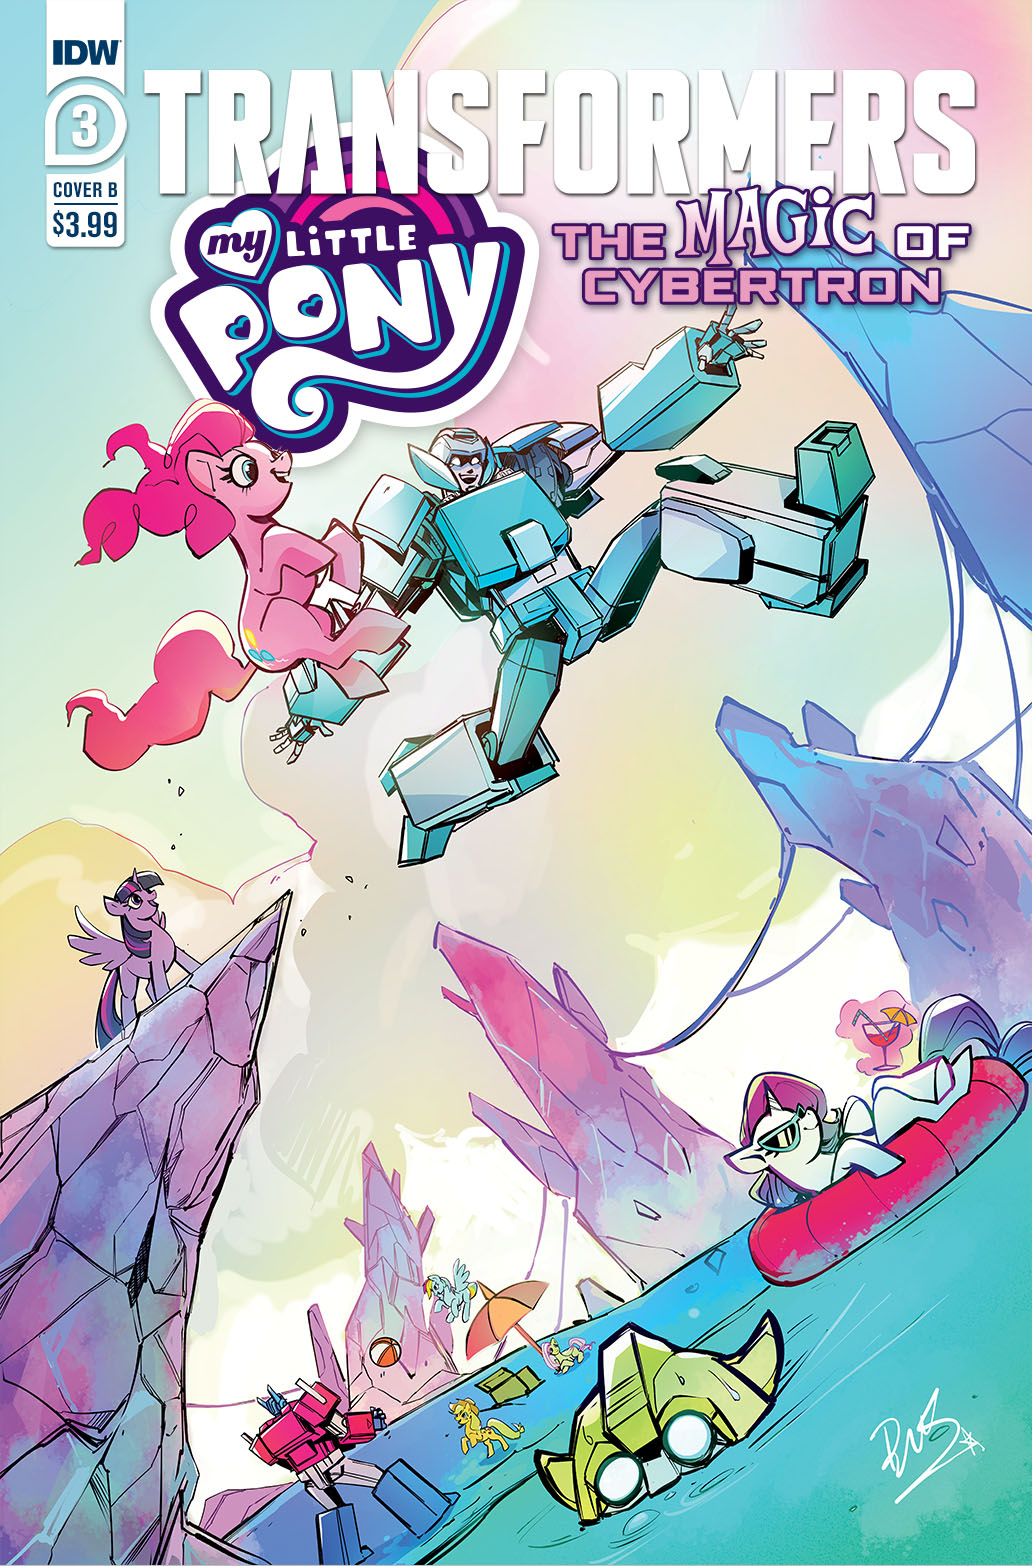 MLP_TF03-coverB-copy IDW Publishing June 2021 Solicitations